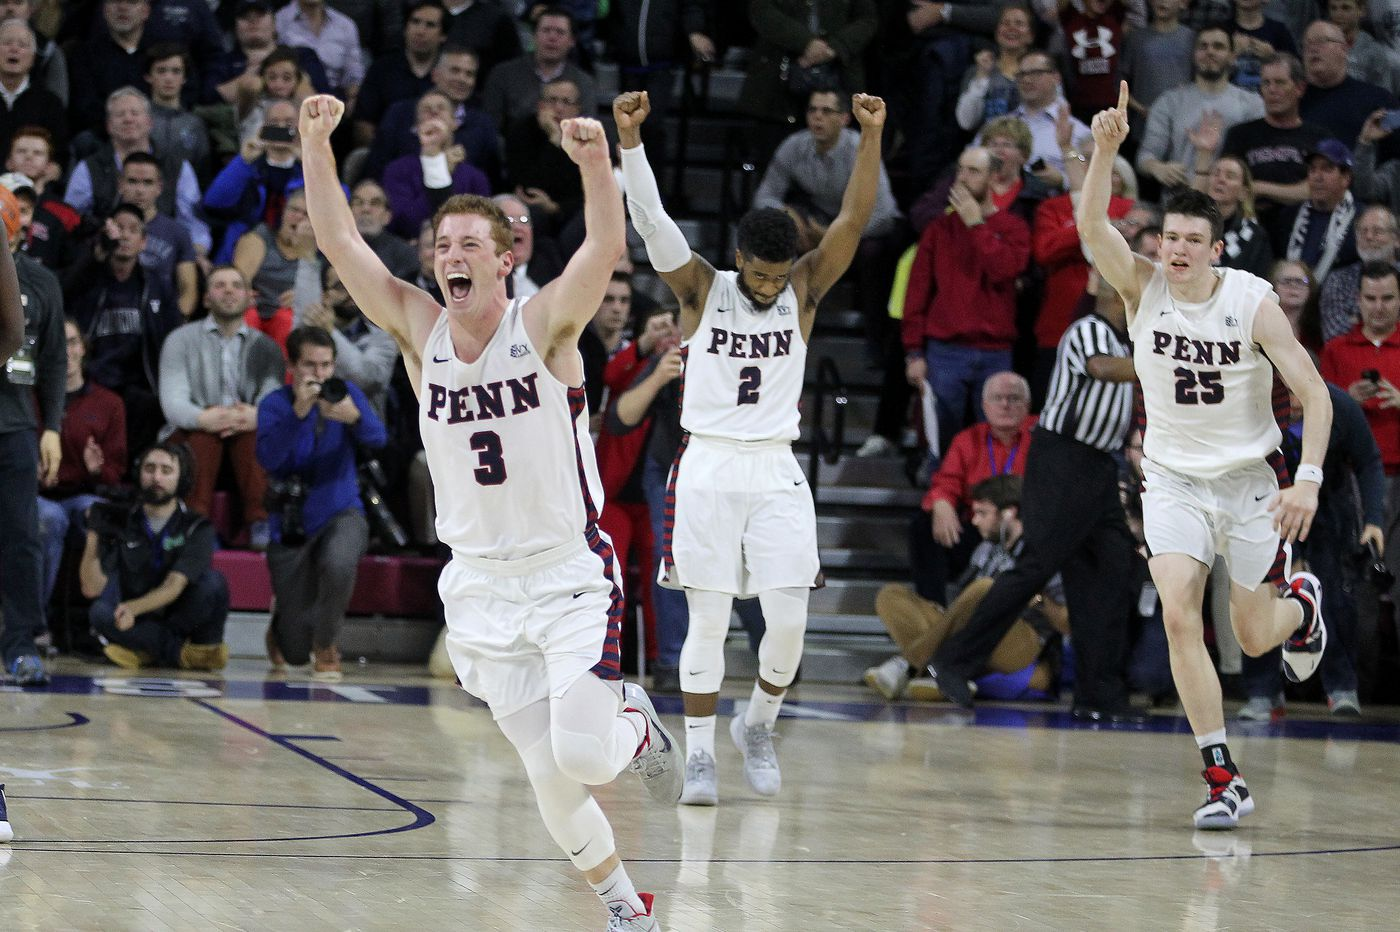 Penn's Jake Silpe changes the percentages in a game and his career | Mike Jensen